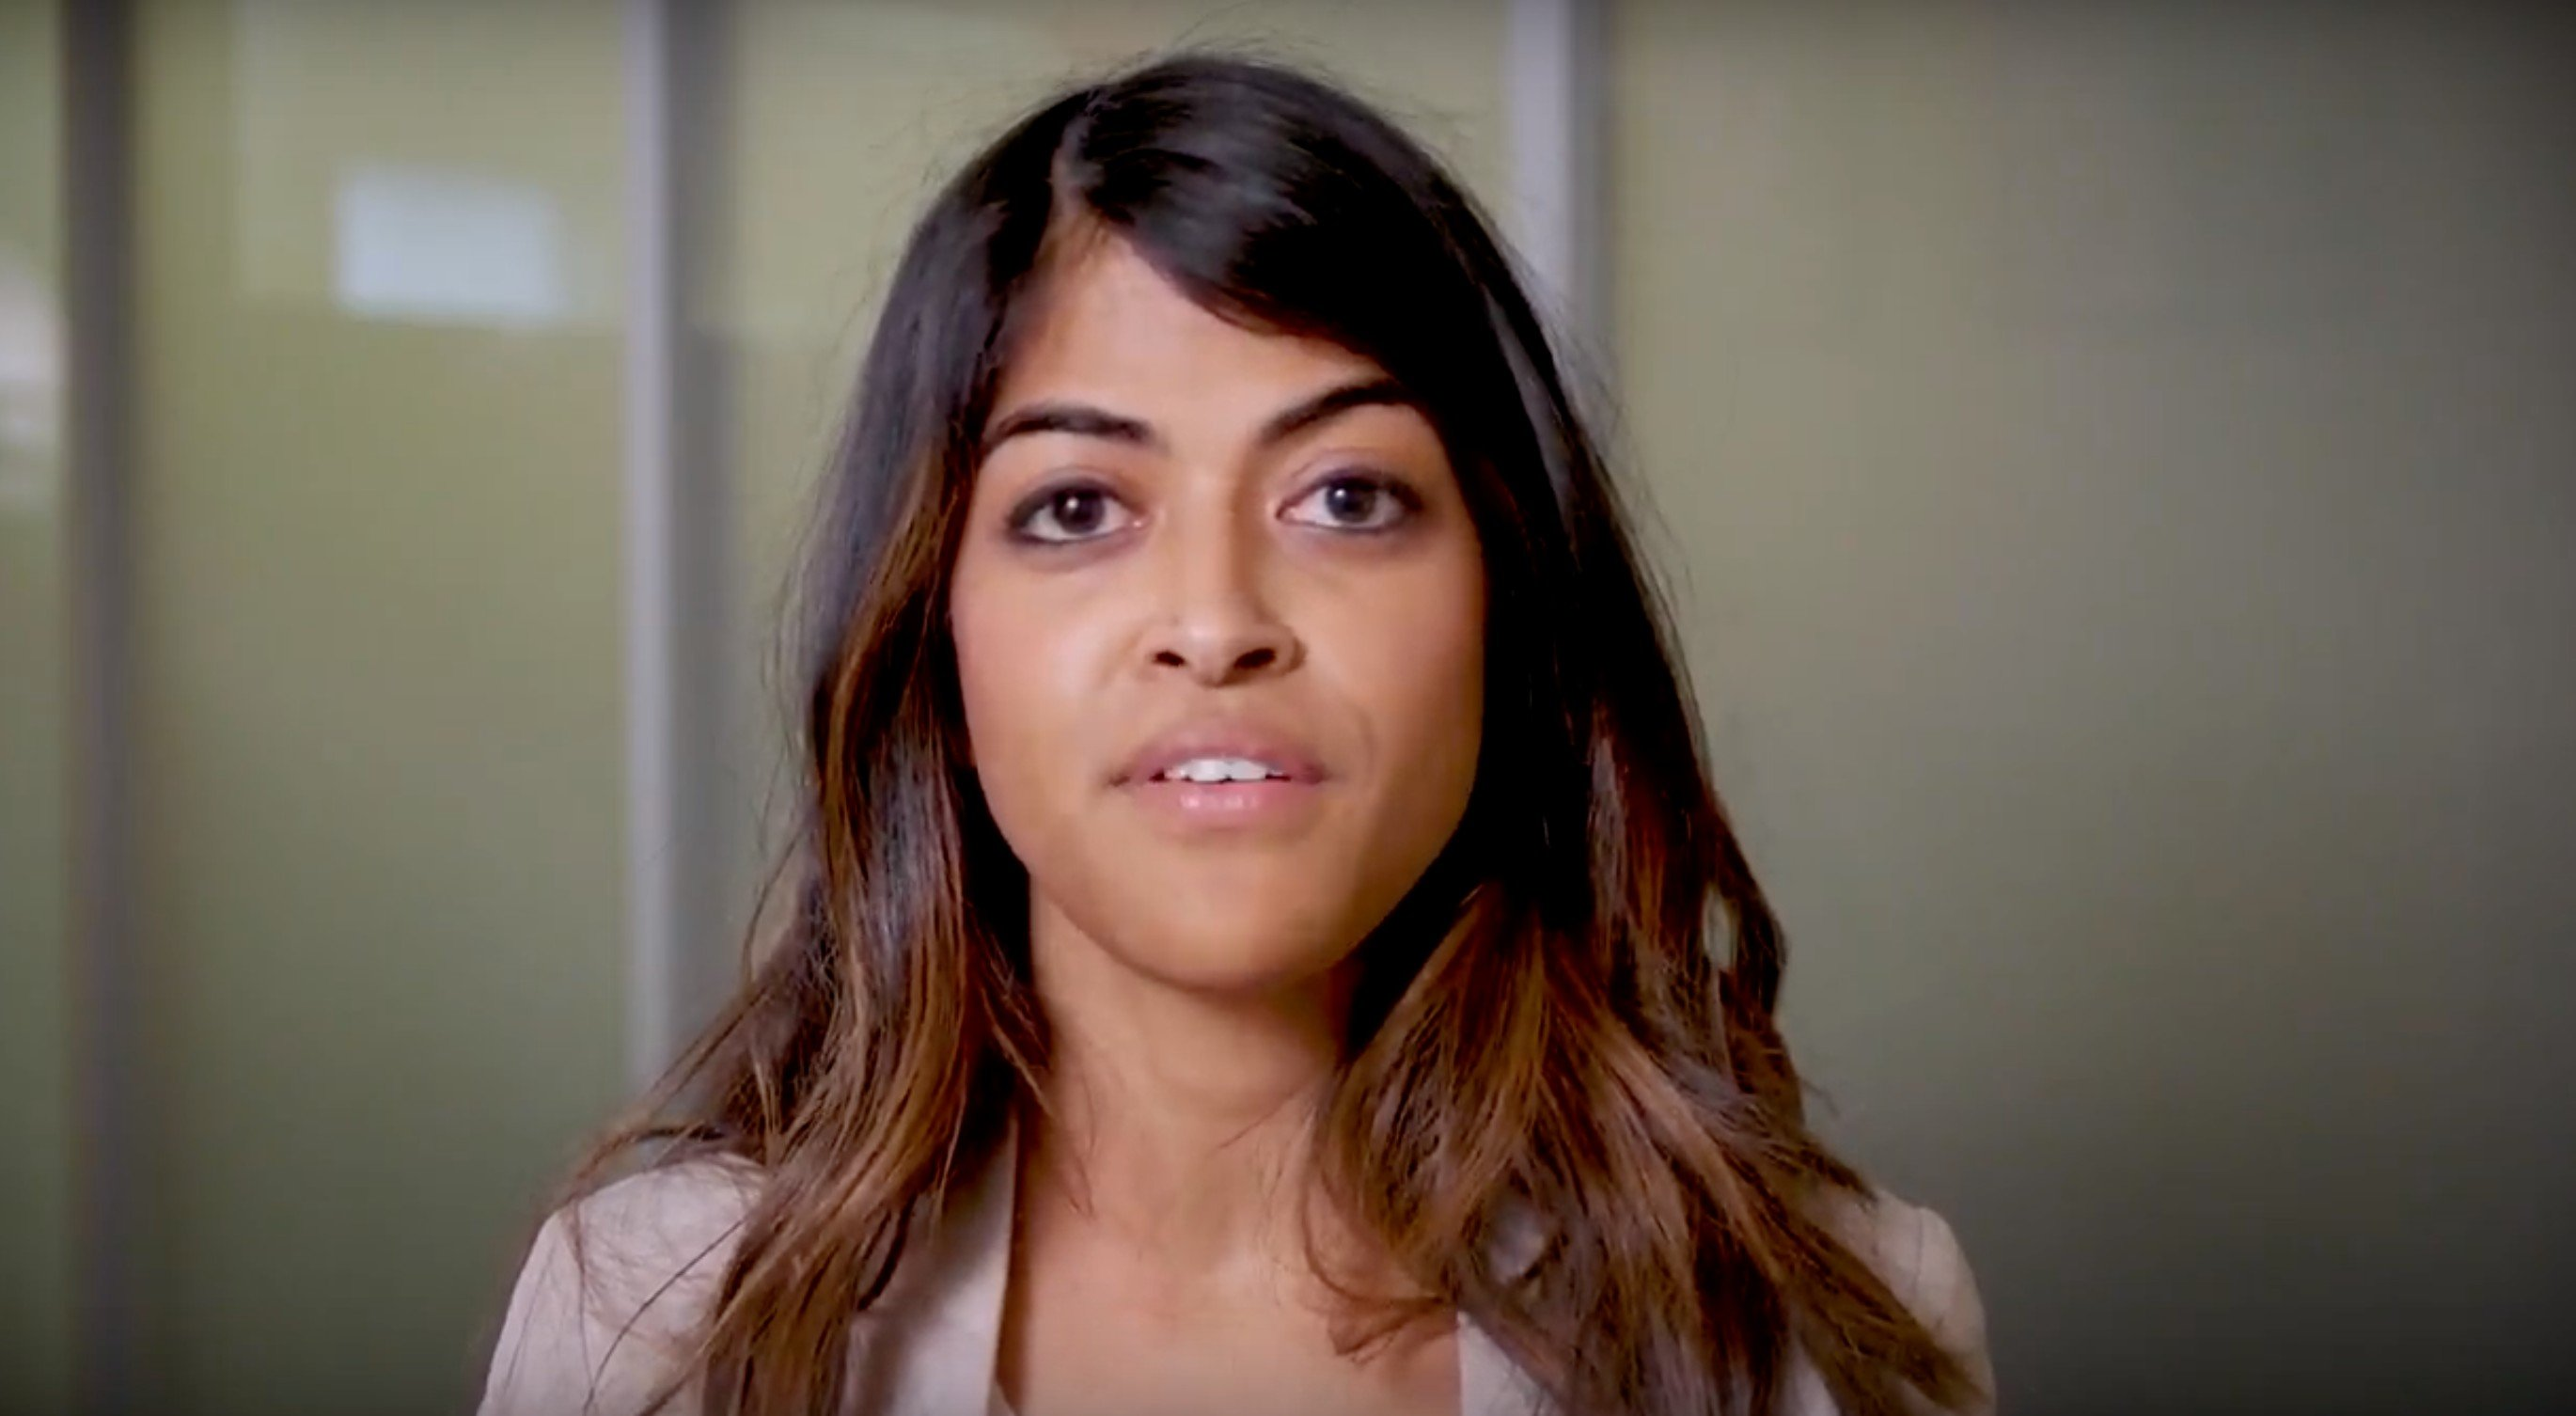 Dr. Meera Sha speaks for reproductive health rights | Photo: YouTube/Physicians for Reproductive Health videos